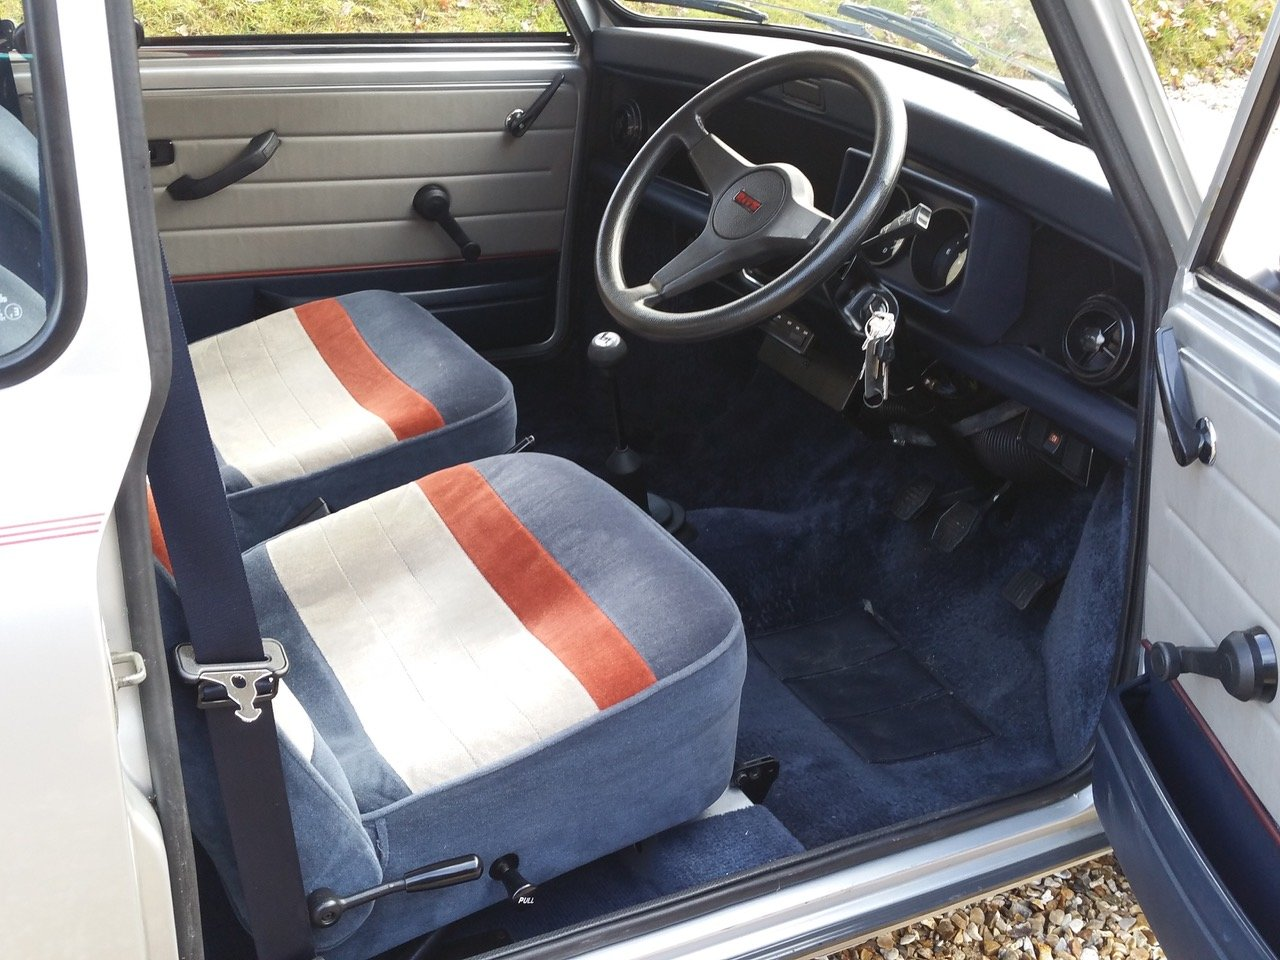 1992 'Time Warp' Mini Ritz On Just 3820 Miles From New SOLD (picture 6 of 10)